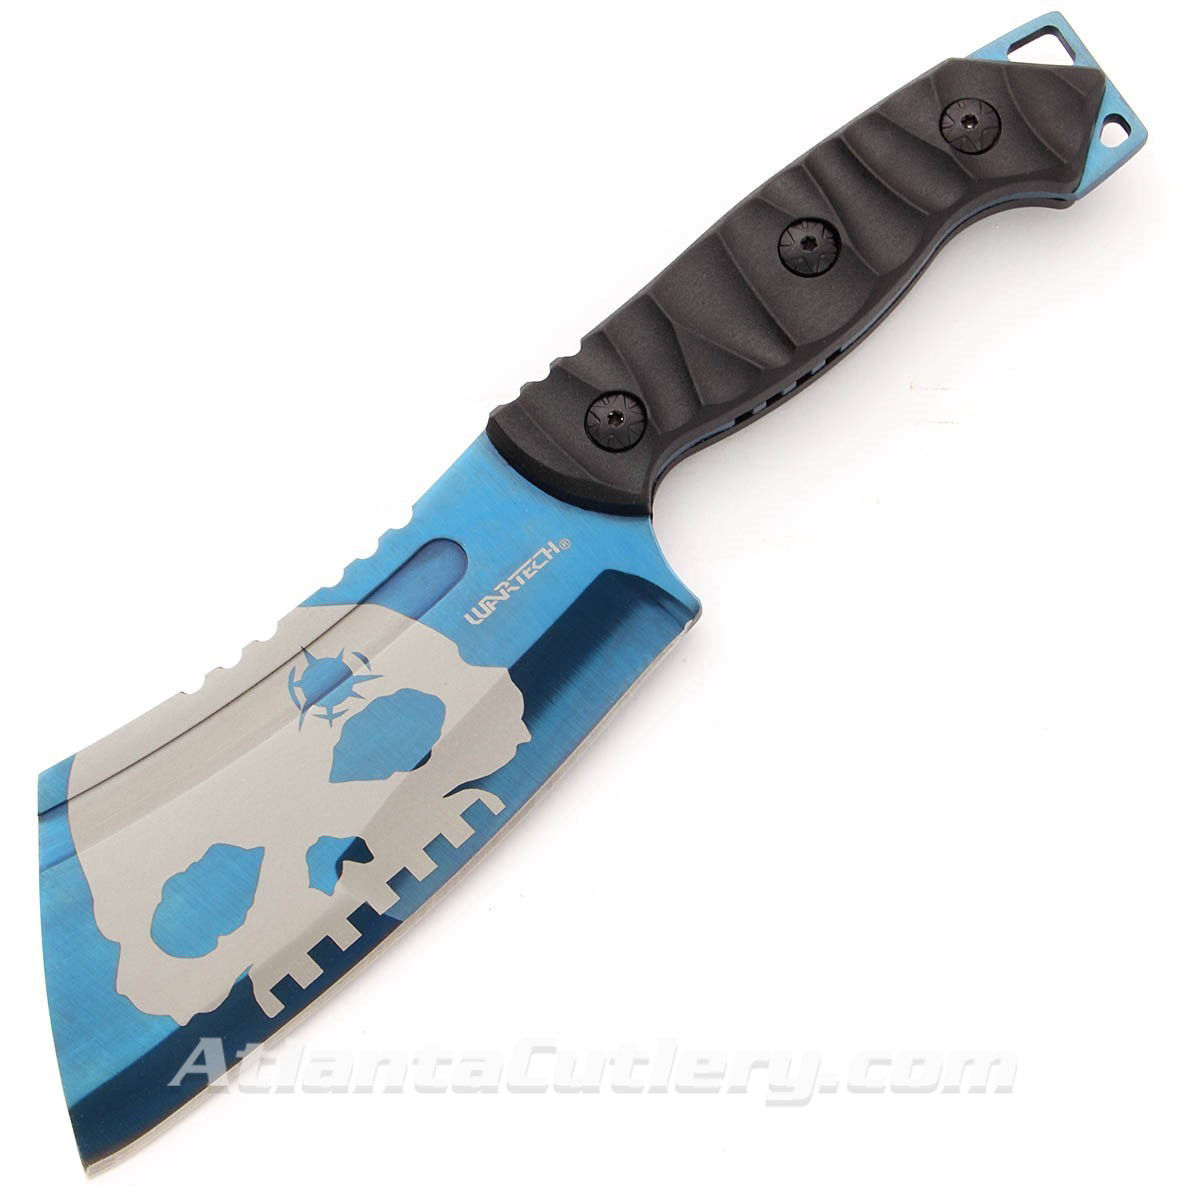 Wartech Blue Cleaver Fixed Blade Skull Hunting Knife